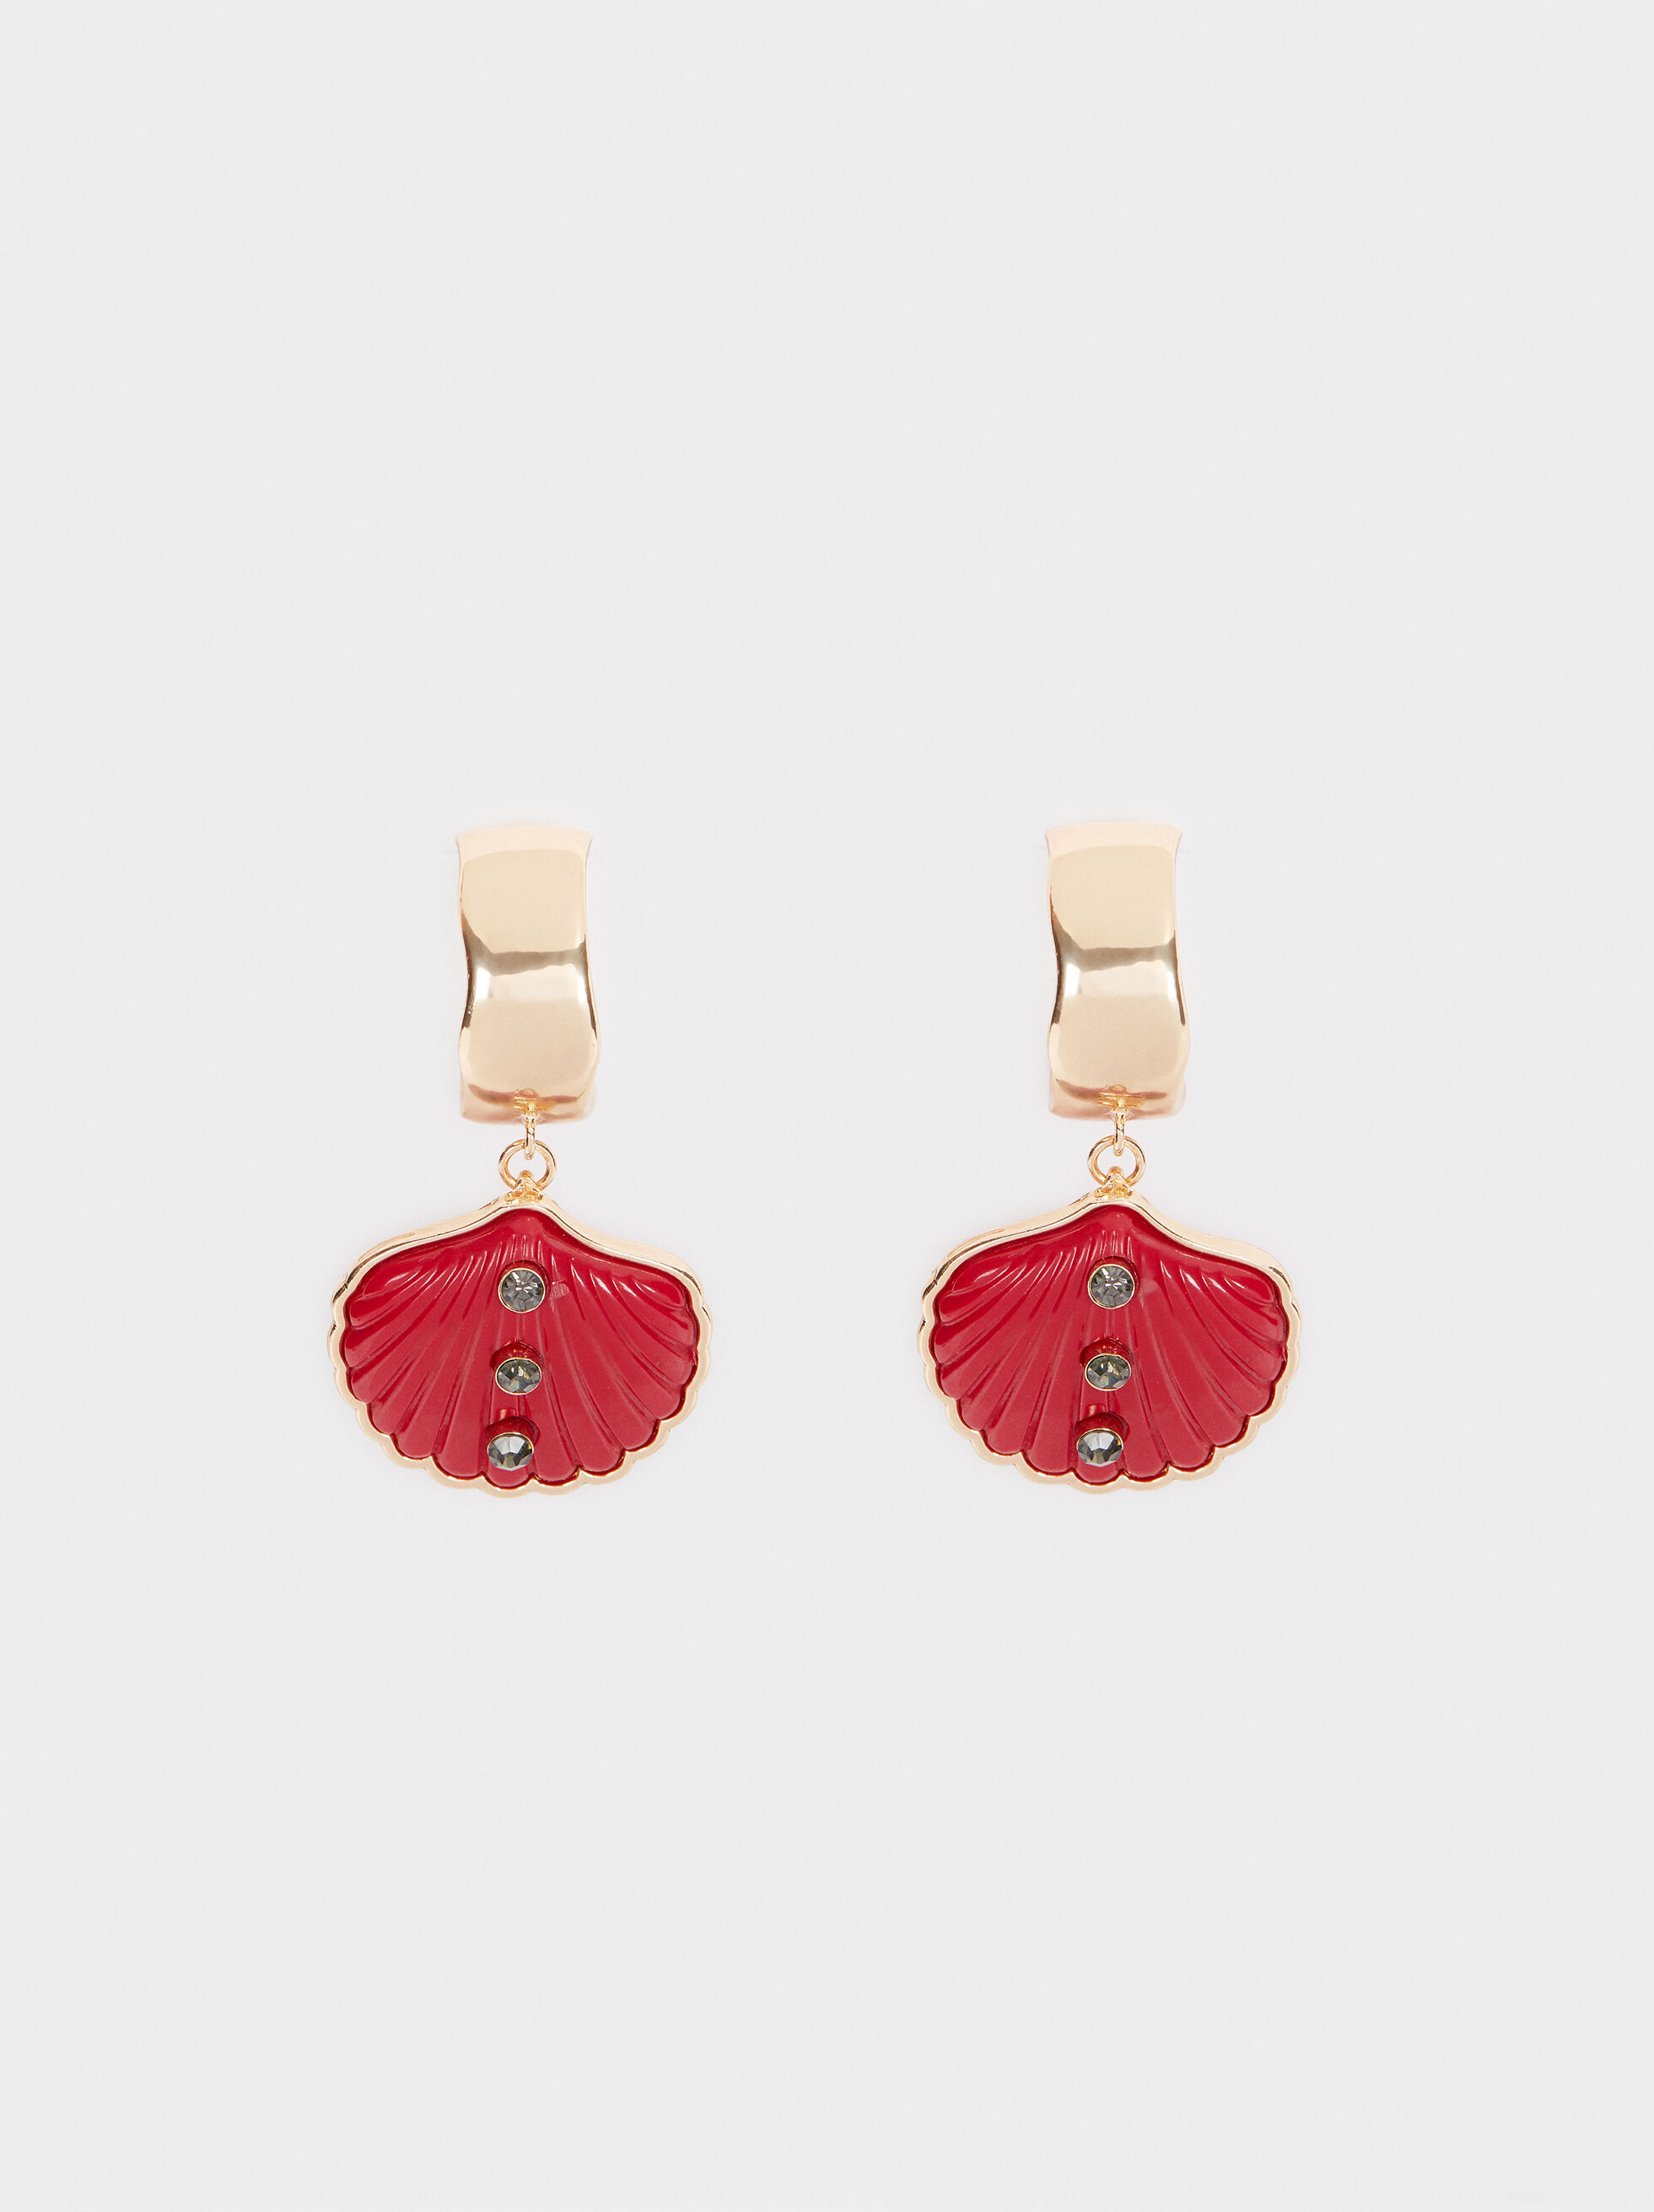 Recife Long Dangle Earrings With Shells, Red, hi-res